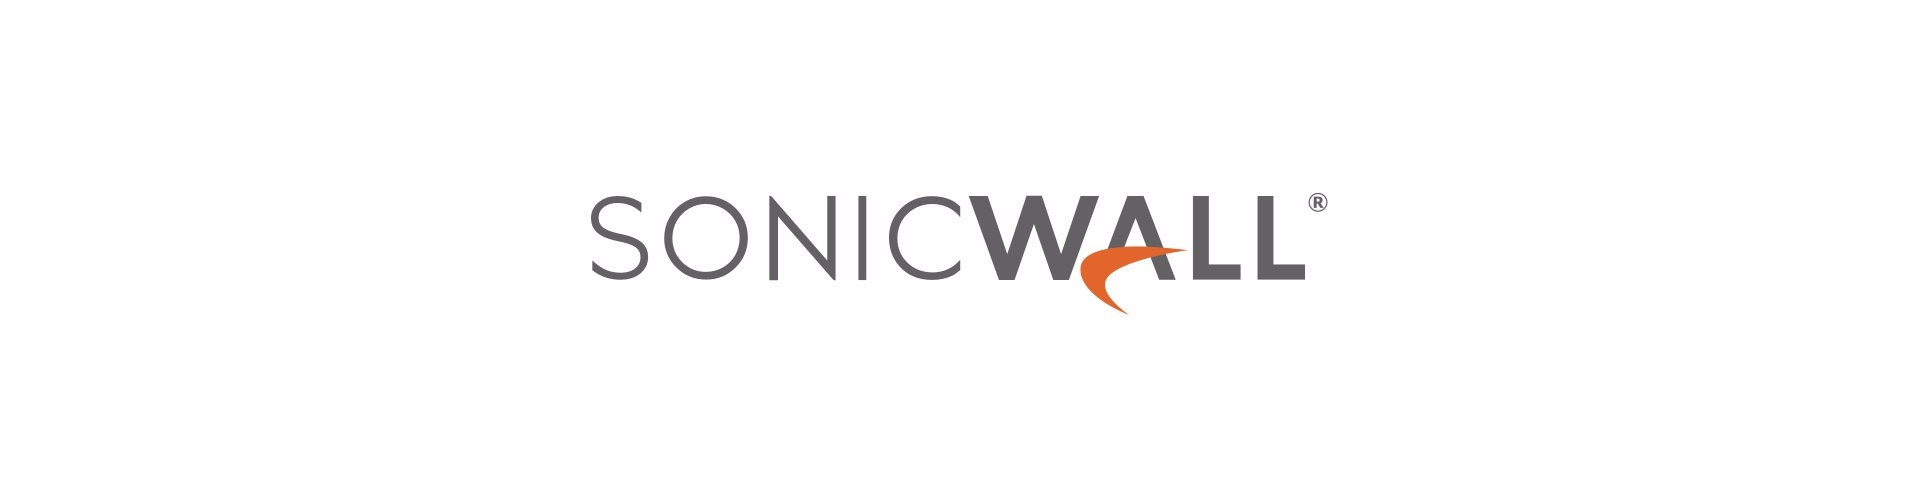 SonicWall Digital Assets Library